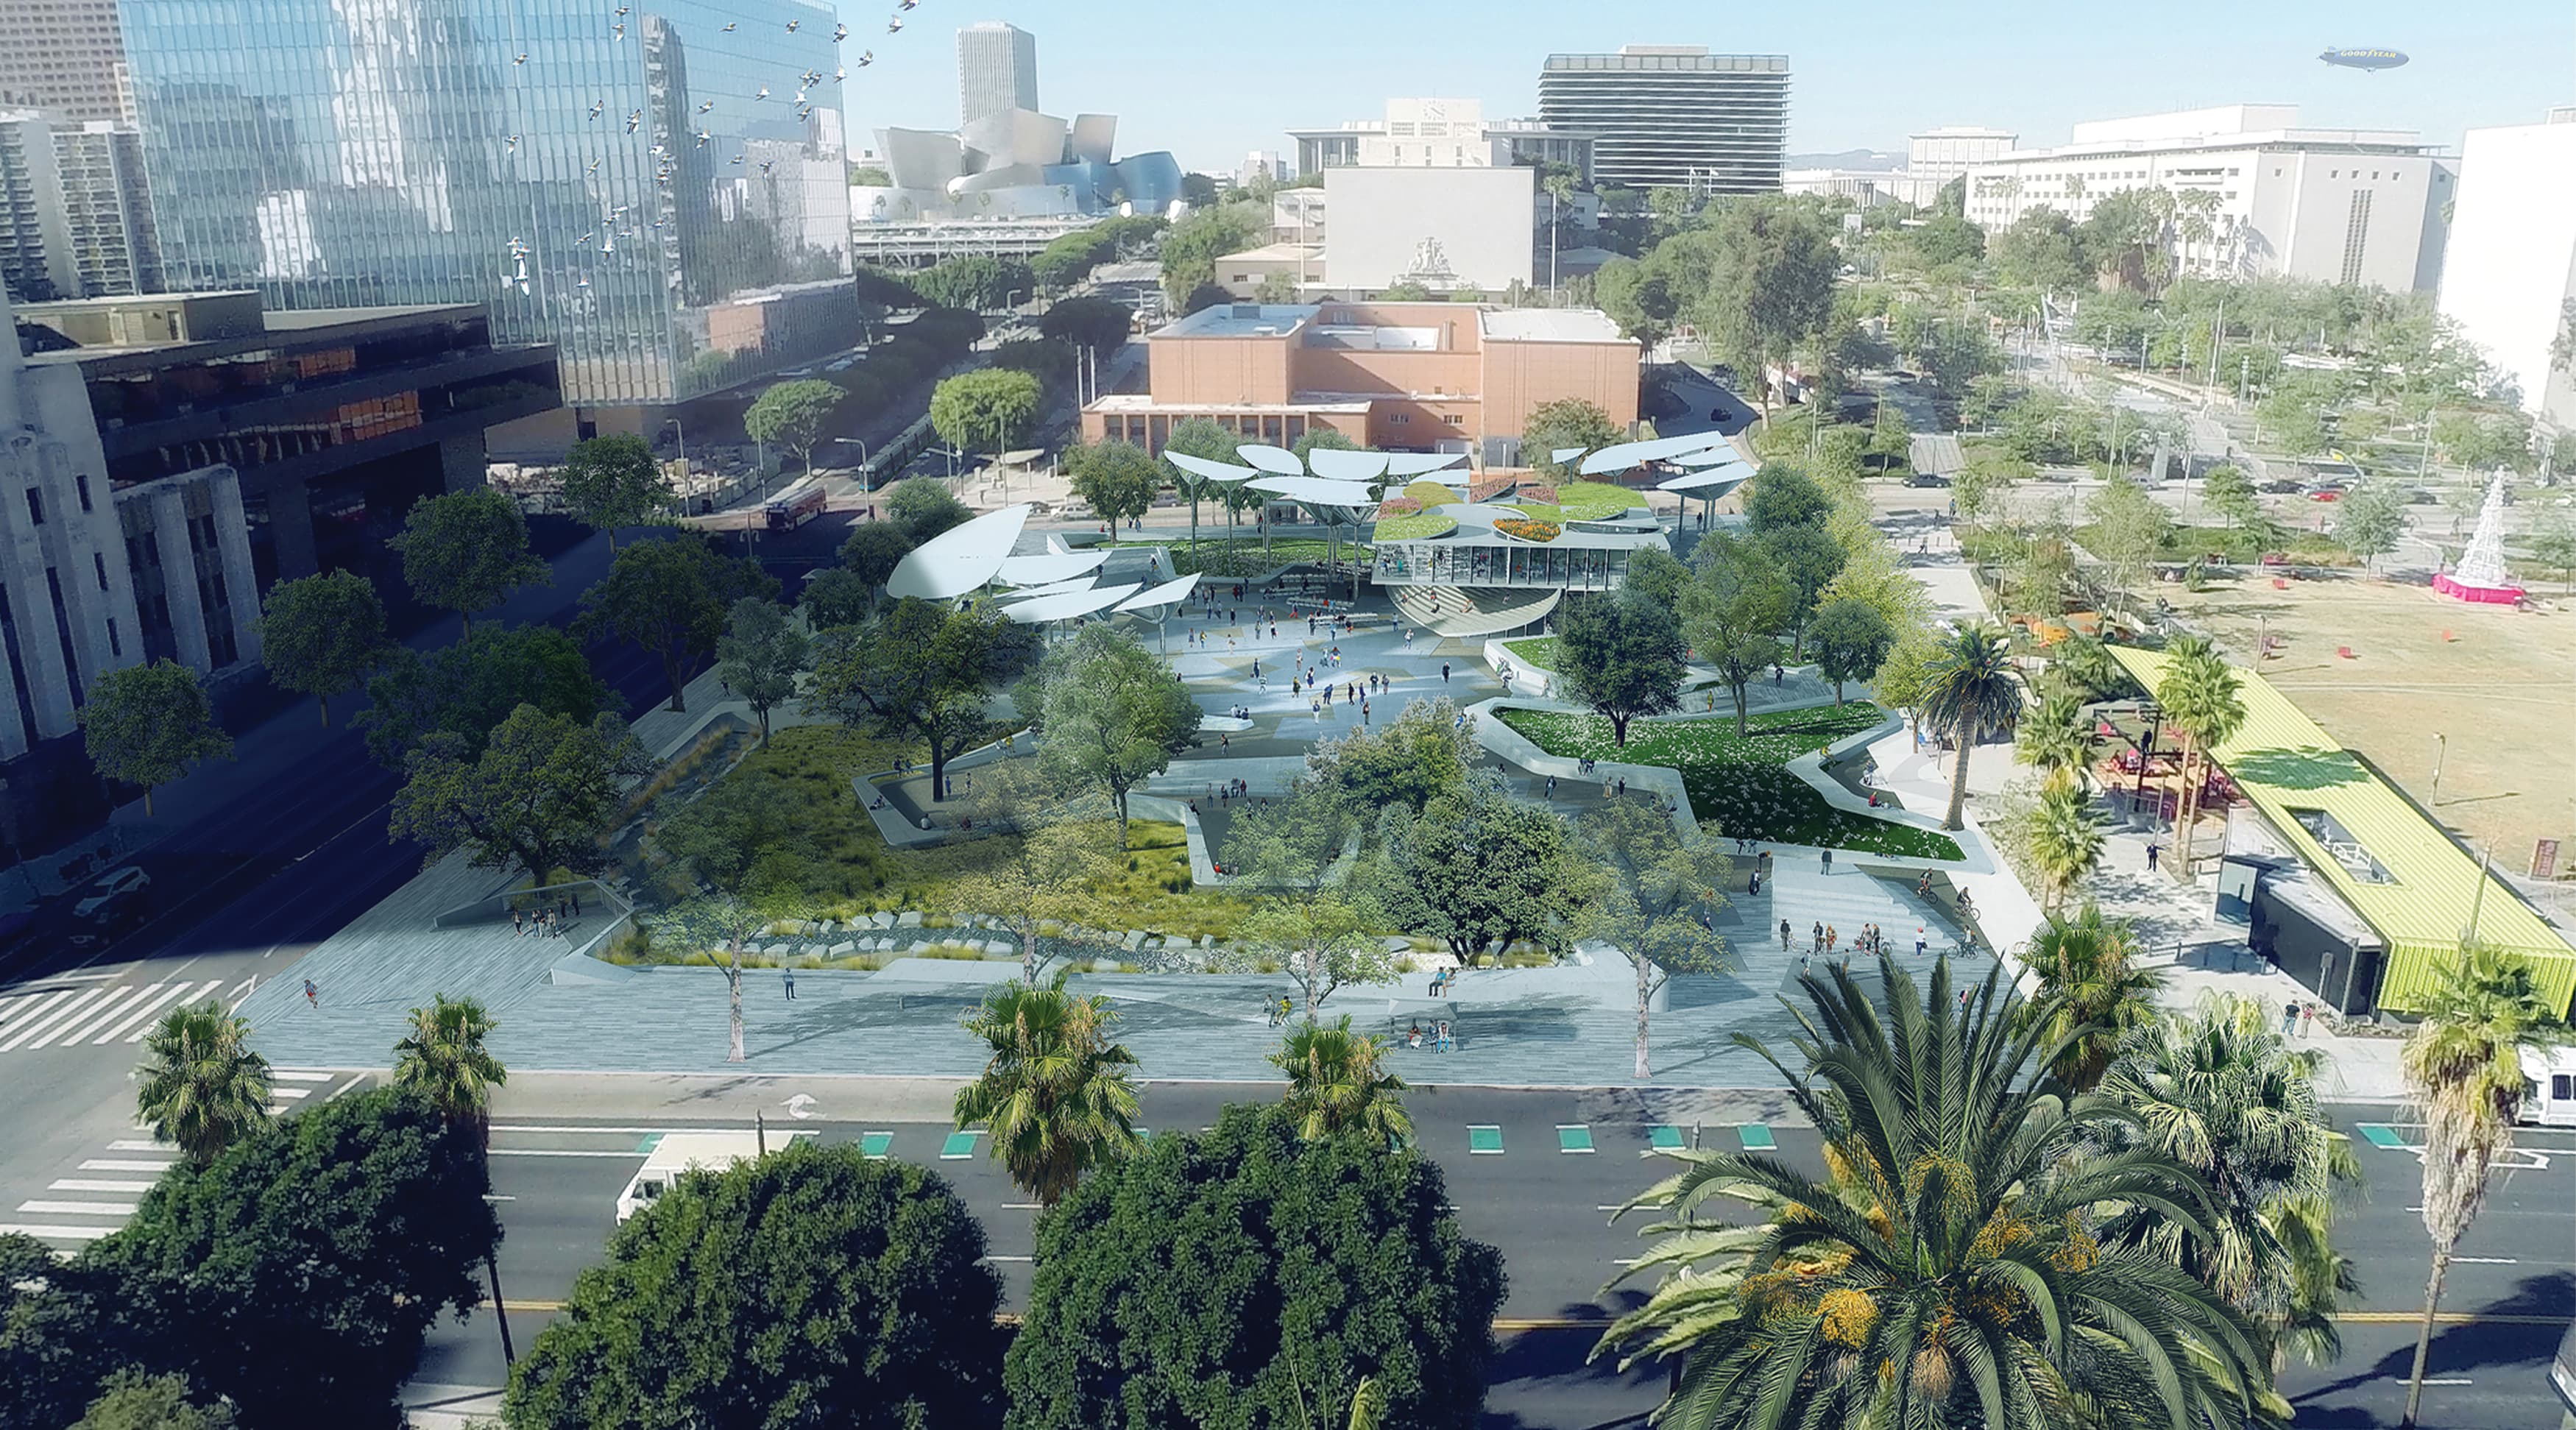 First and Broadway Park, located in Los Angeles, California, is a civic center and city park.